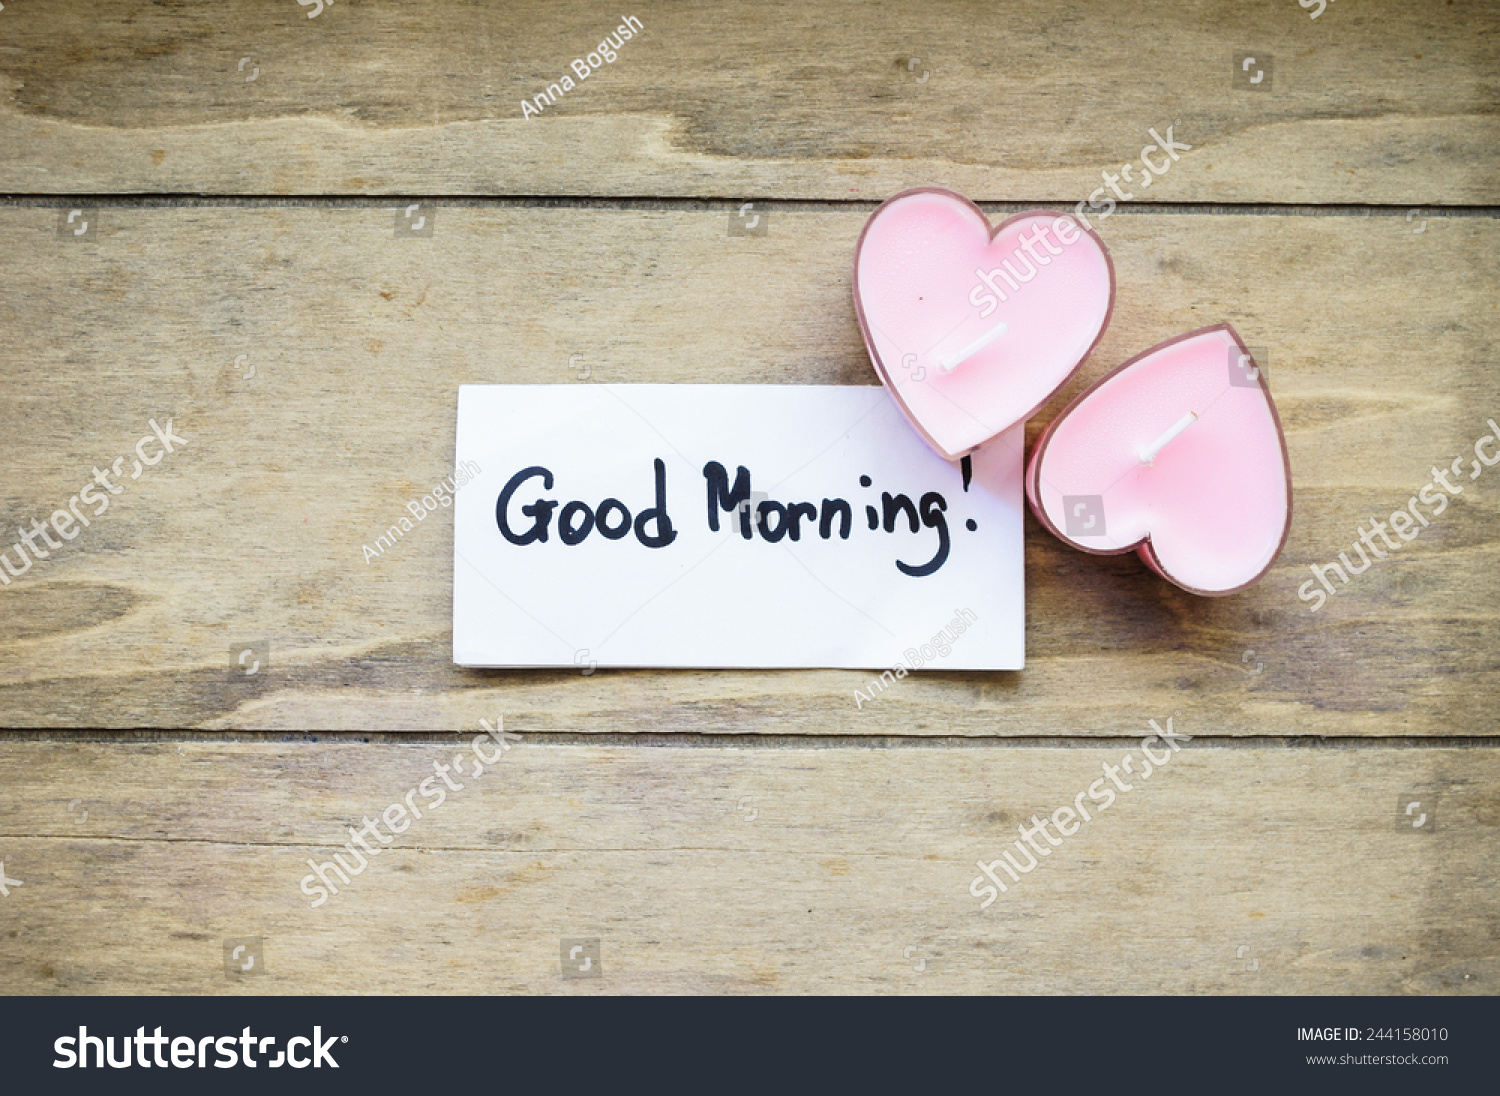 Good Morning Note Heart Shaped Candles Stock Photo Edit Now